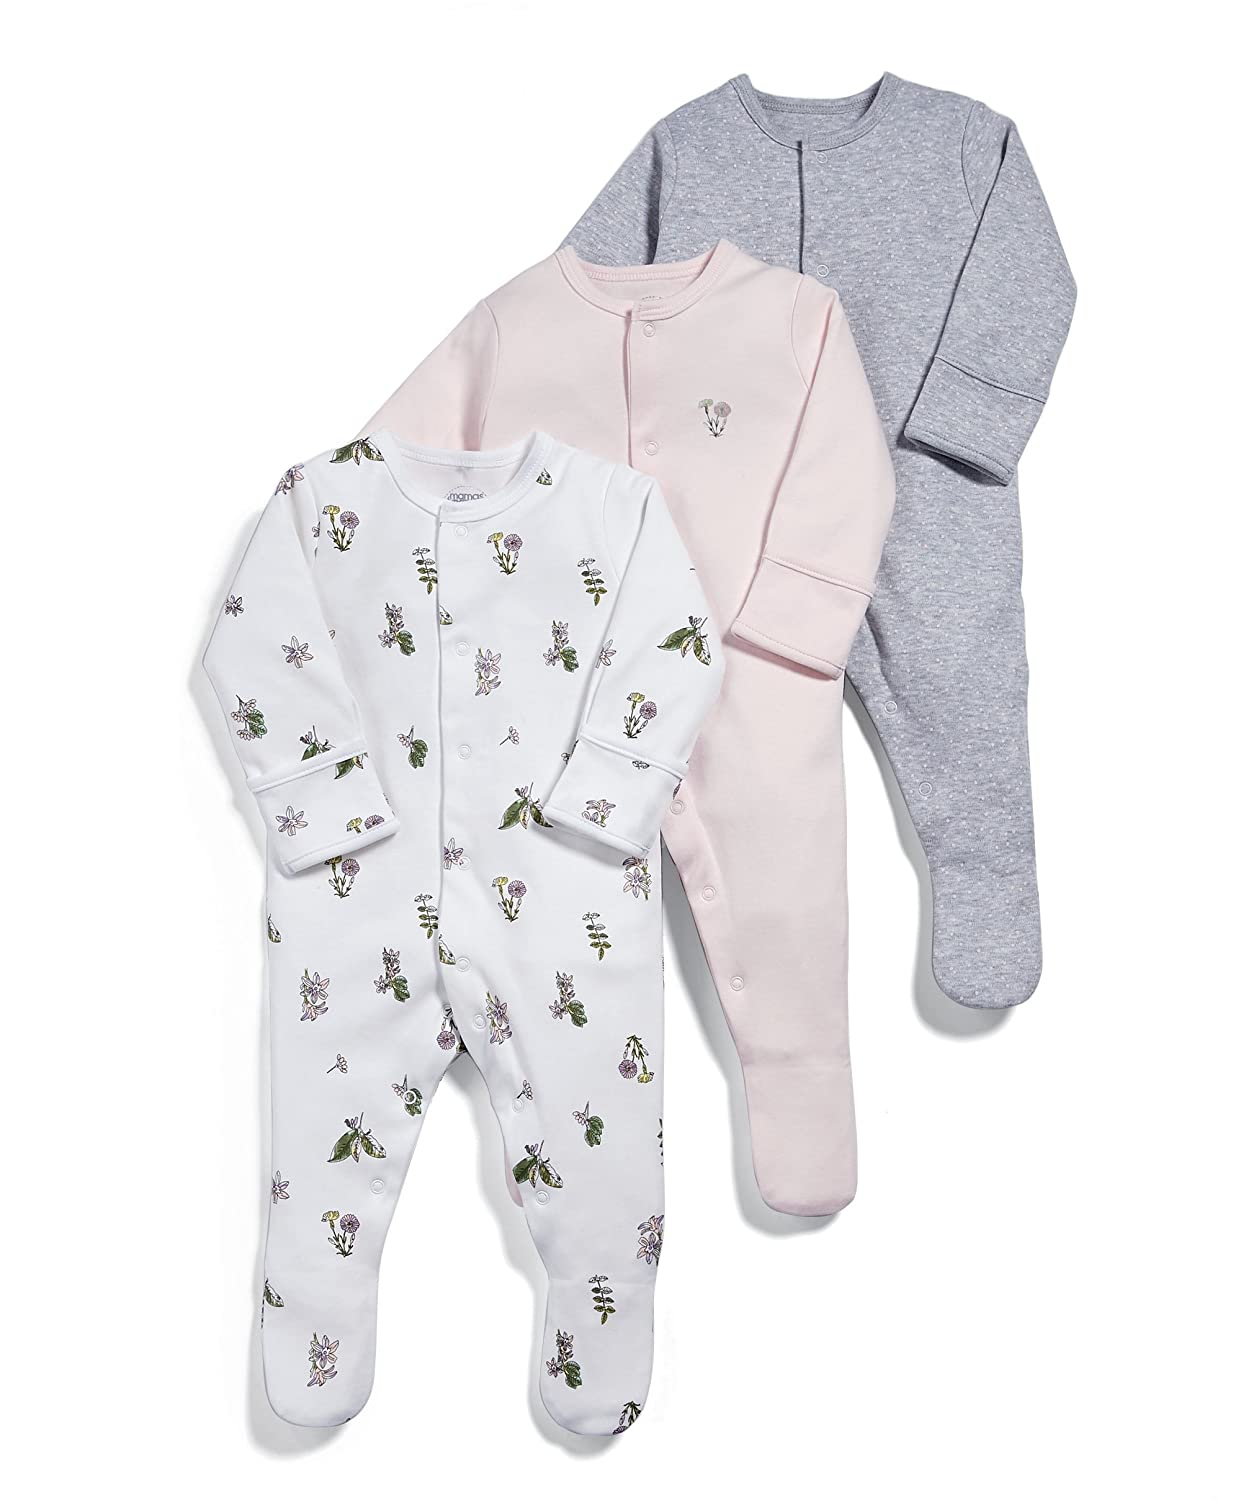 Mamas & Papas Baby Girls' Sleepsuits Pack of 3 Mamas and Papas